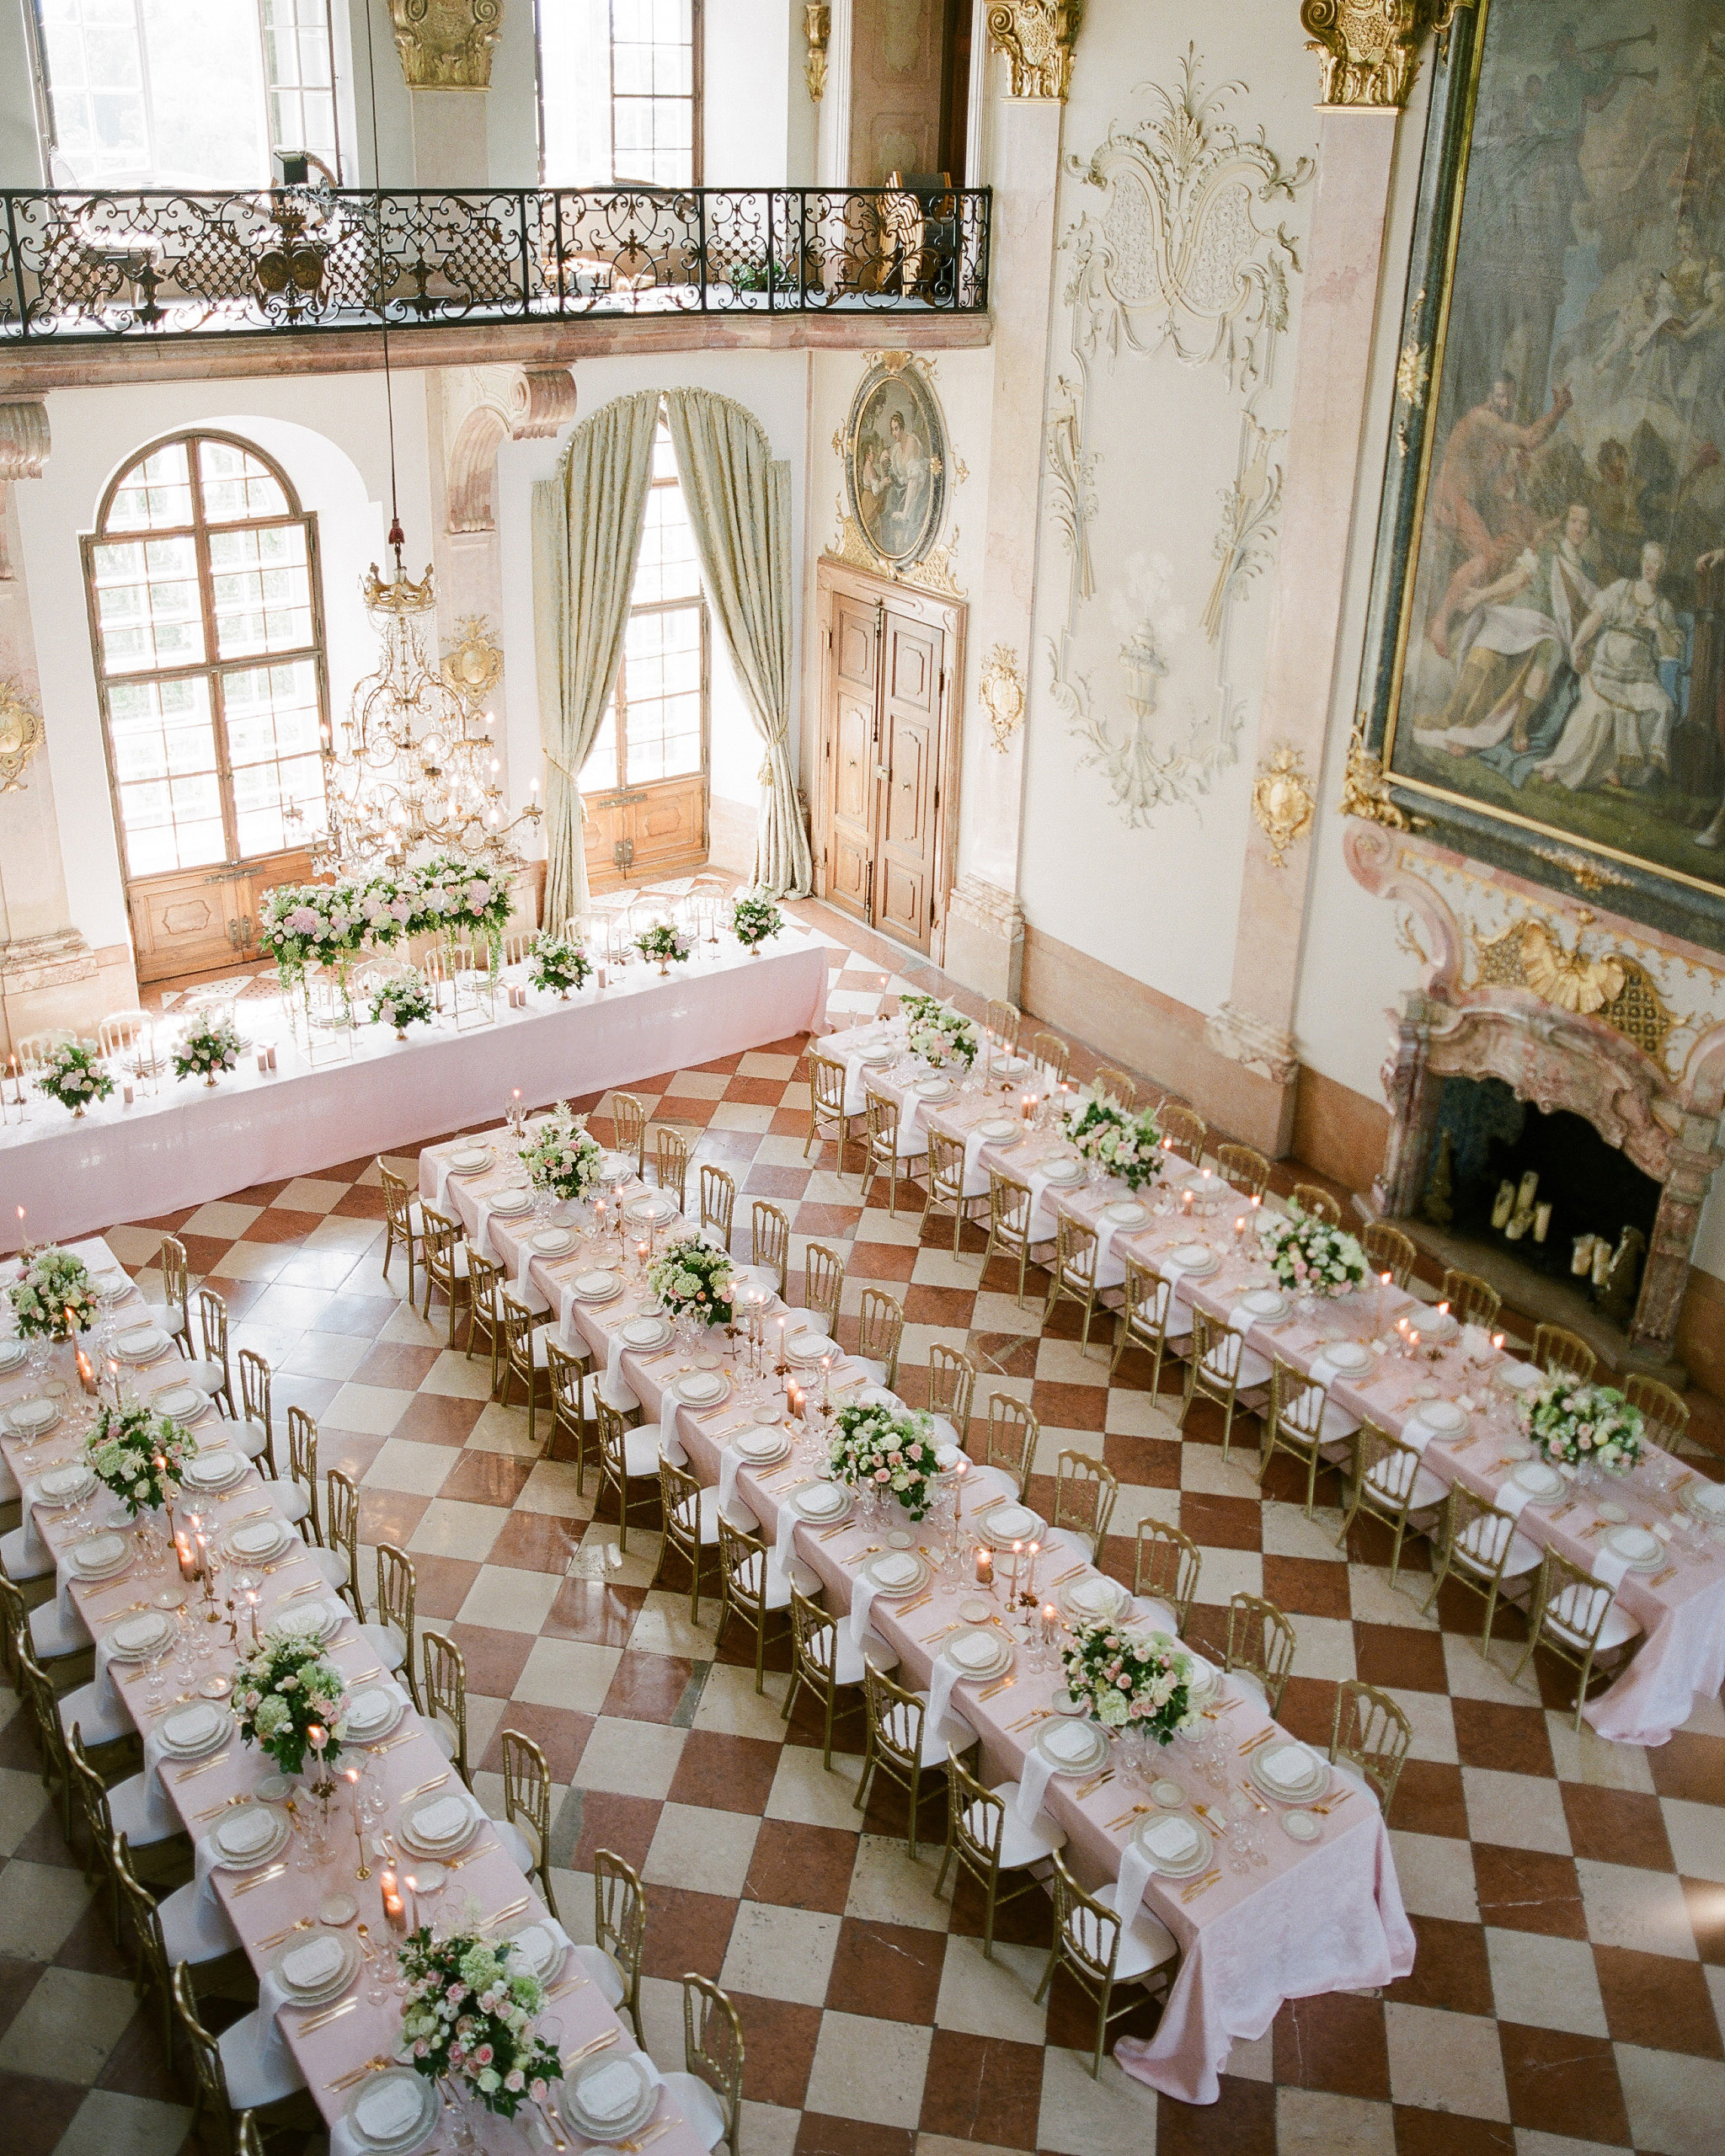 glamorous wedding ideas elegant venue palace